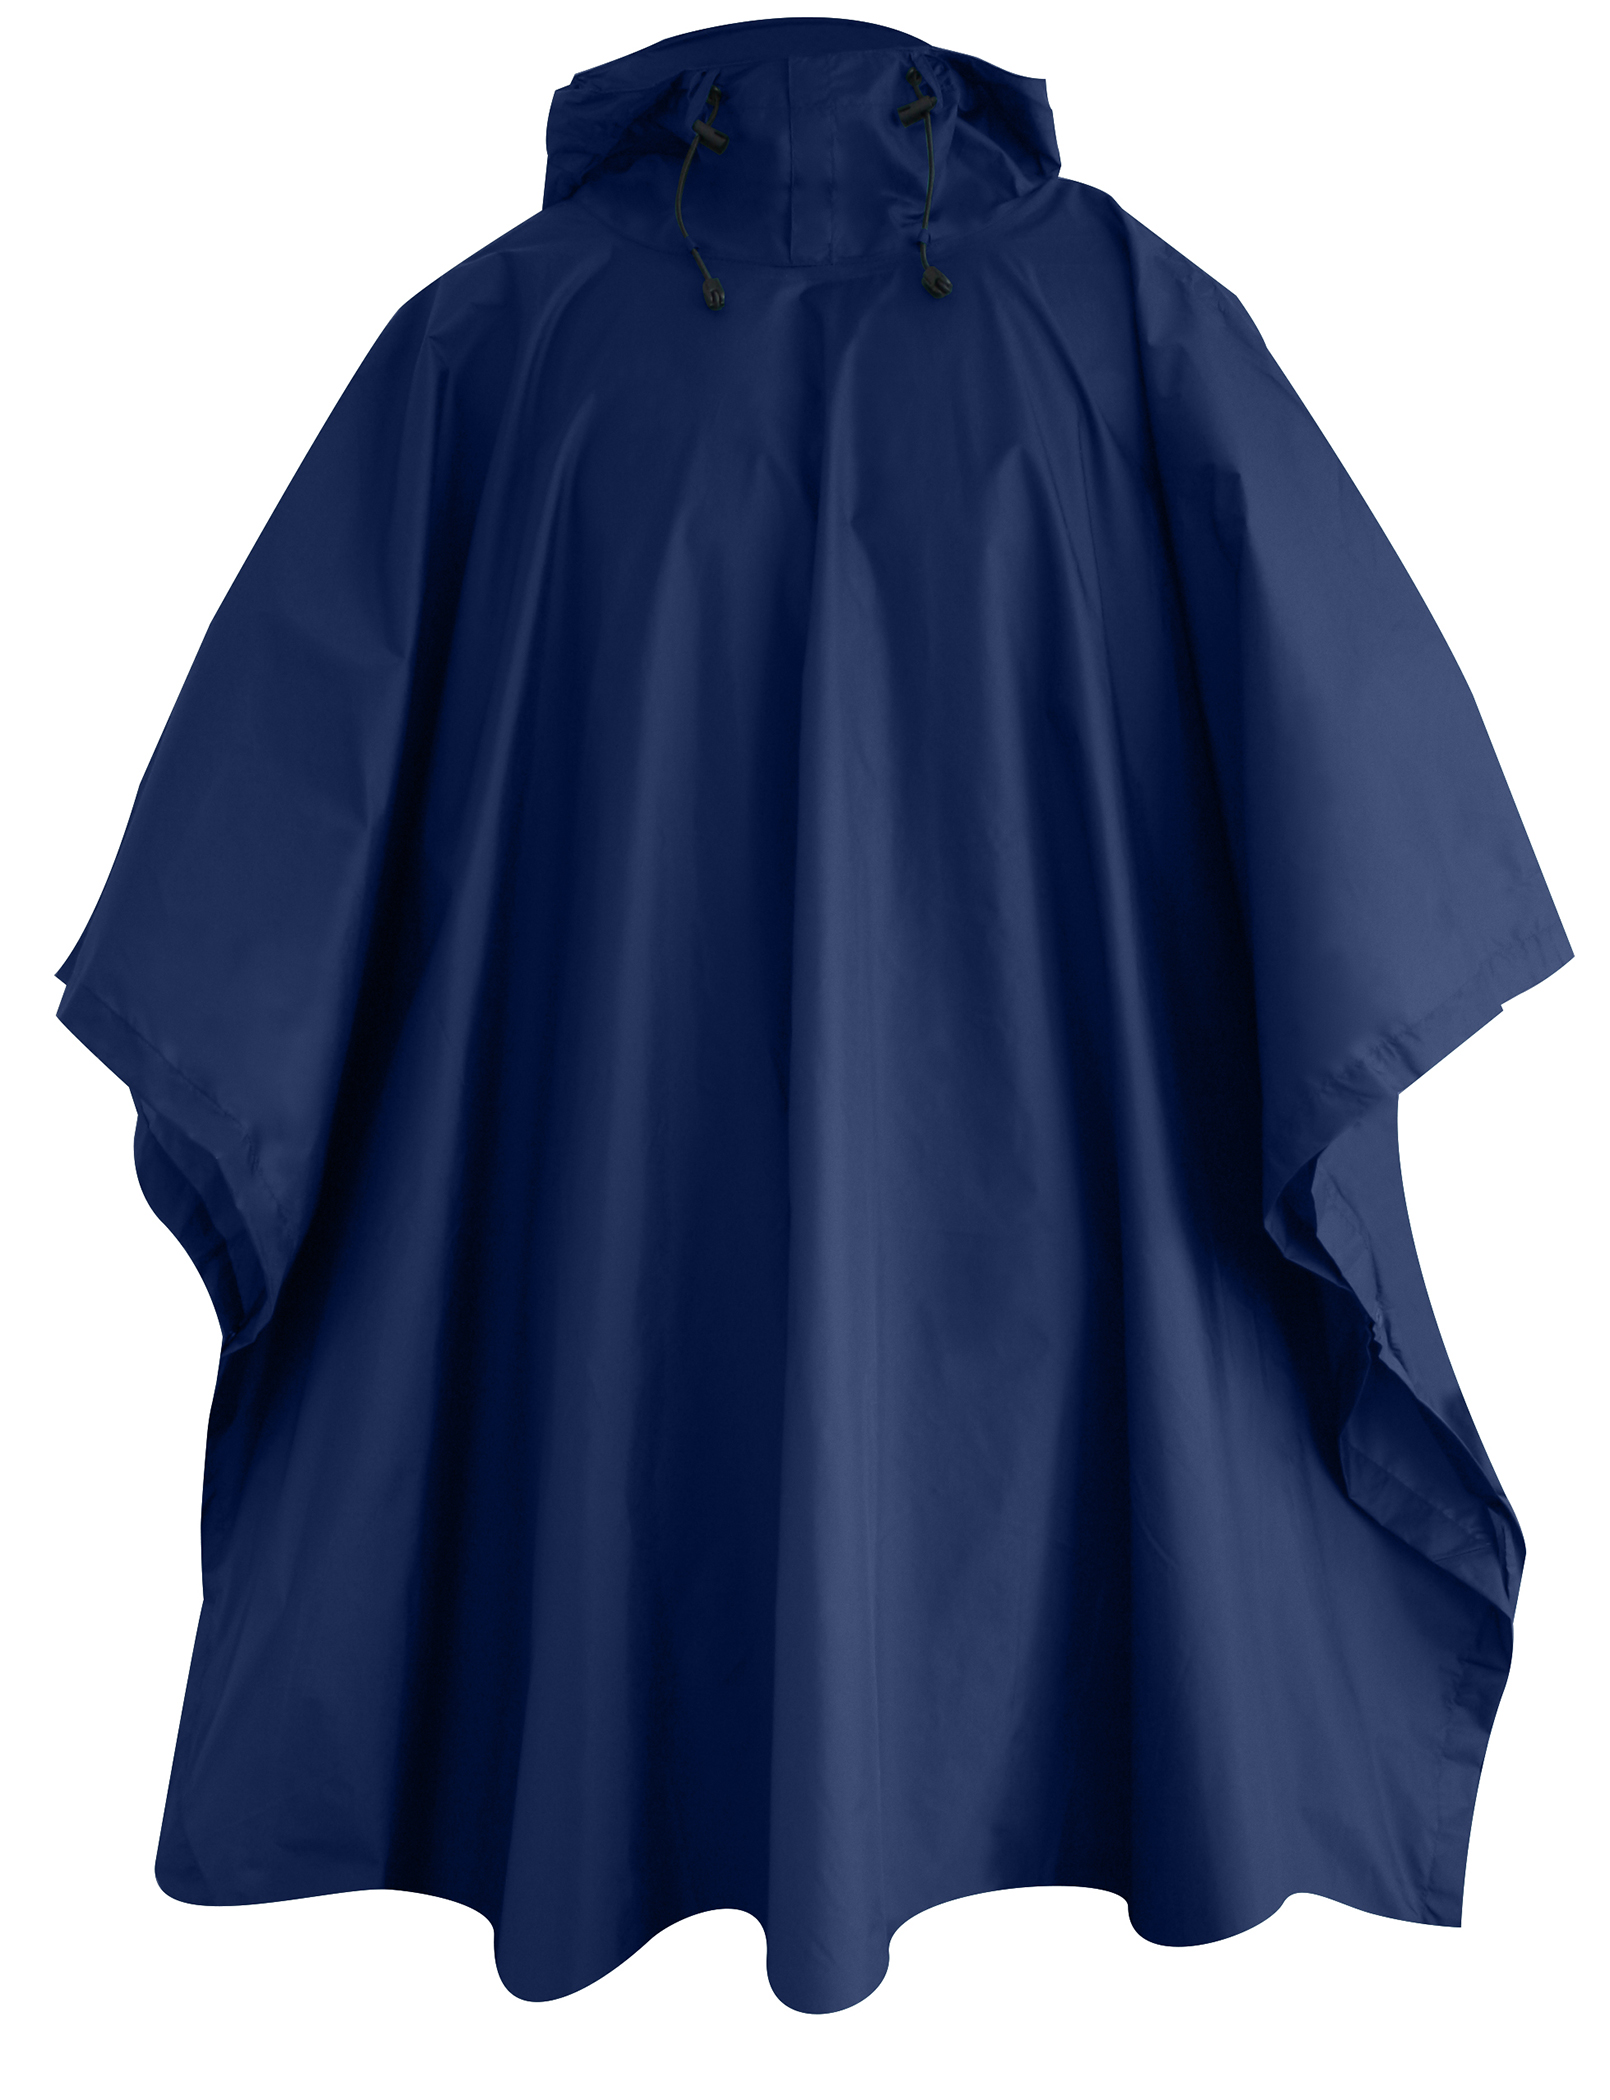 Red Ledge Adult Storm Rain Poncho by Tahsin Industrial Corp., USA